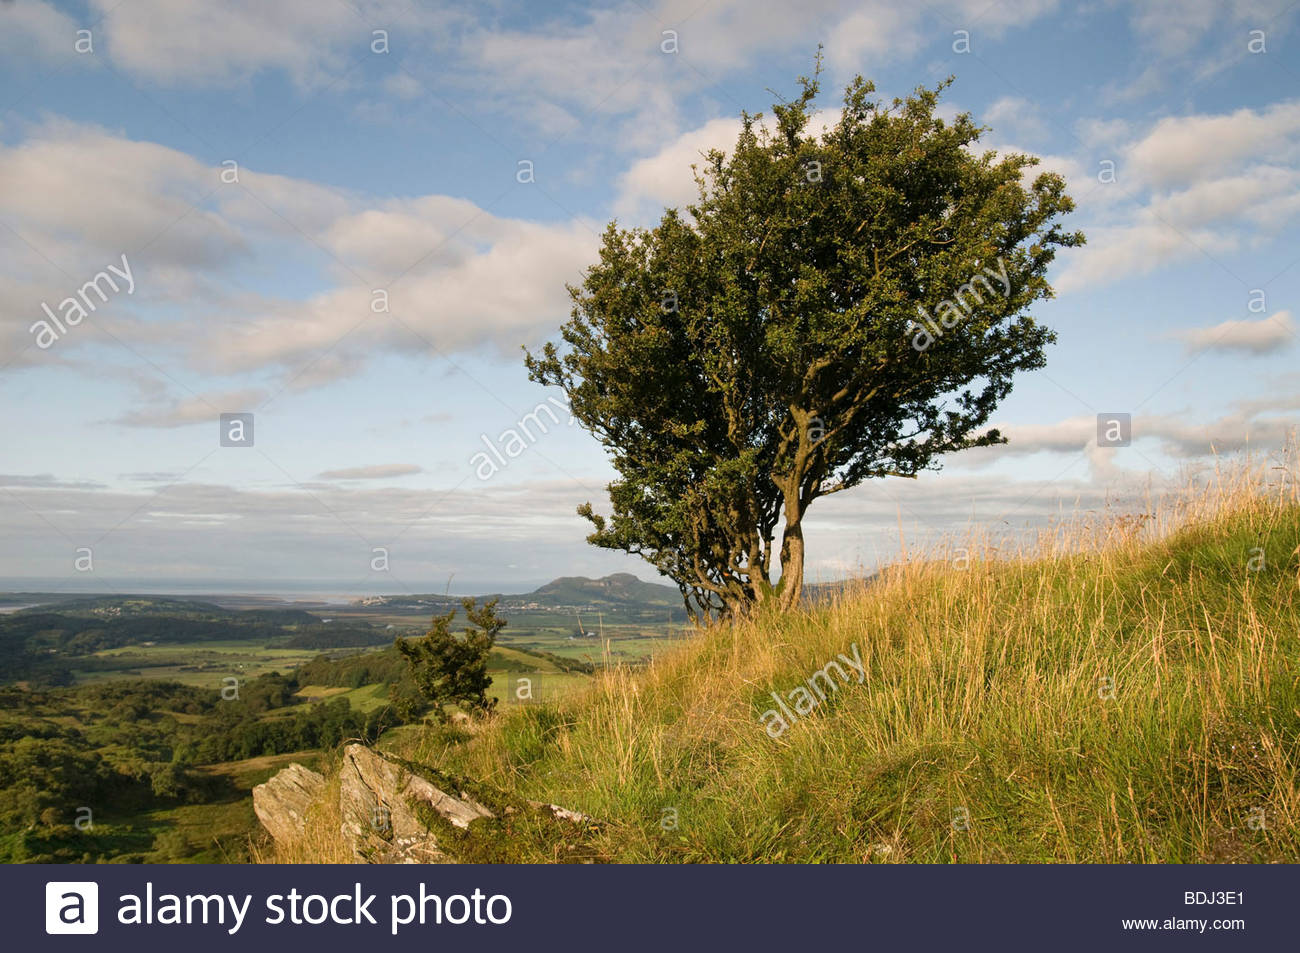 Windswept Hawthorn trees near the village of Croesor, Snowdonia National Park. - Stock Image